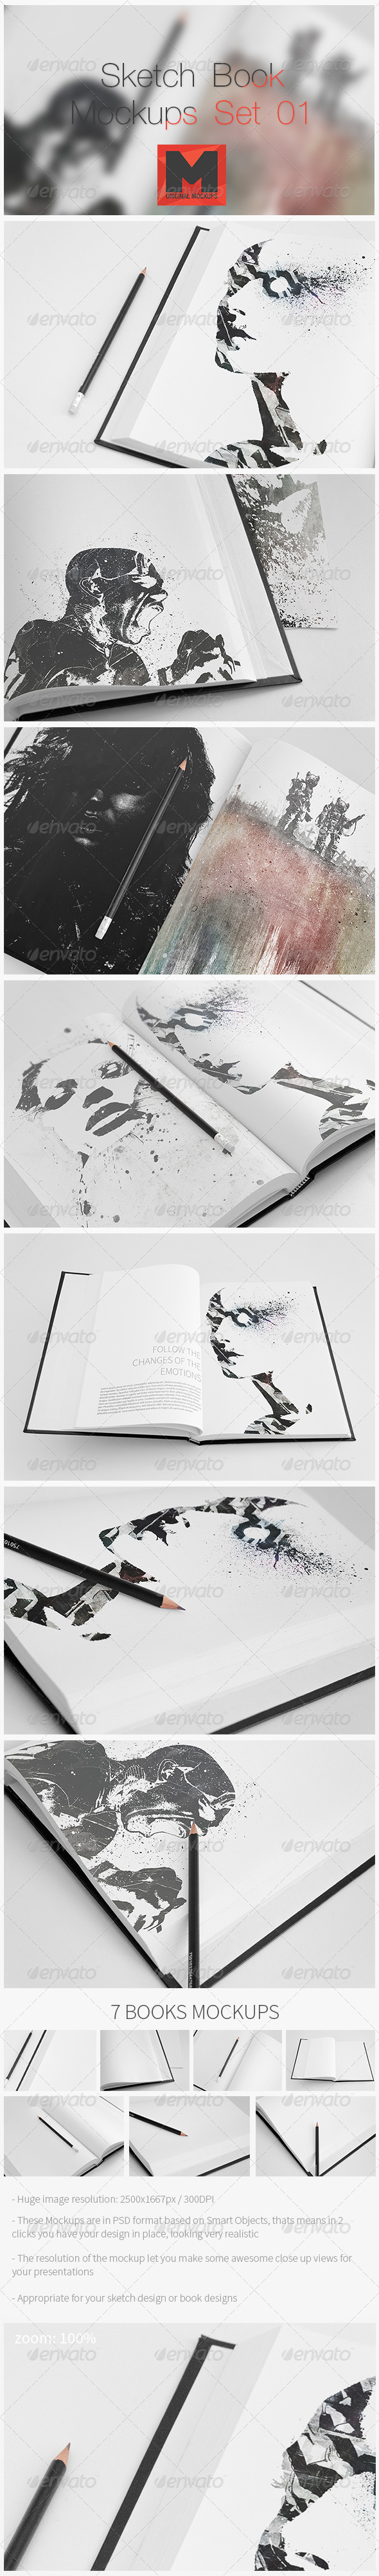 Sketch Book Mock-Ups - Set 01 - Books Print